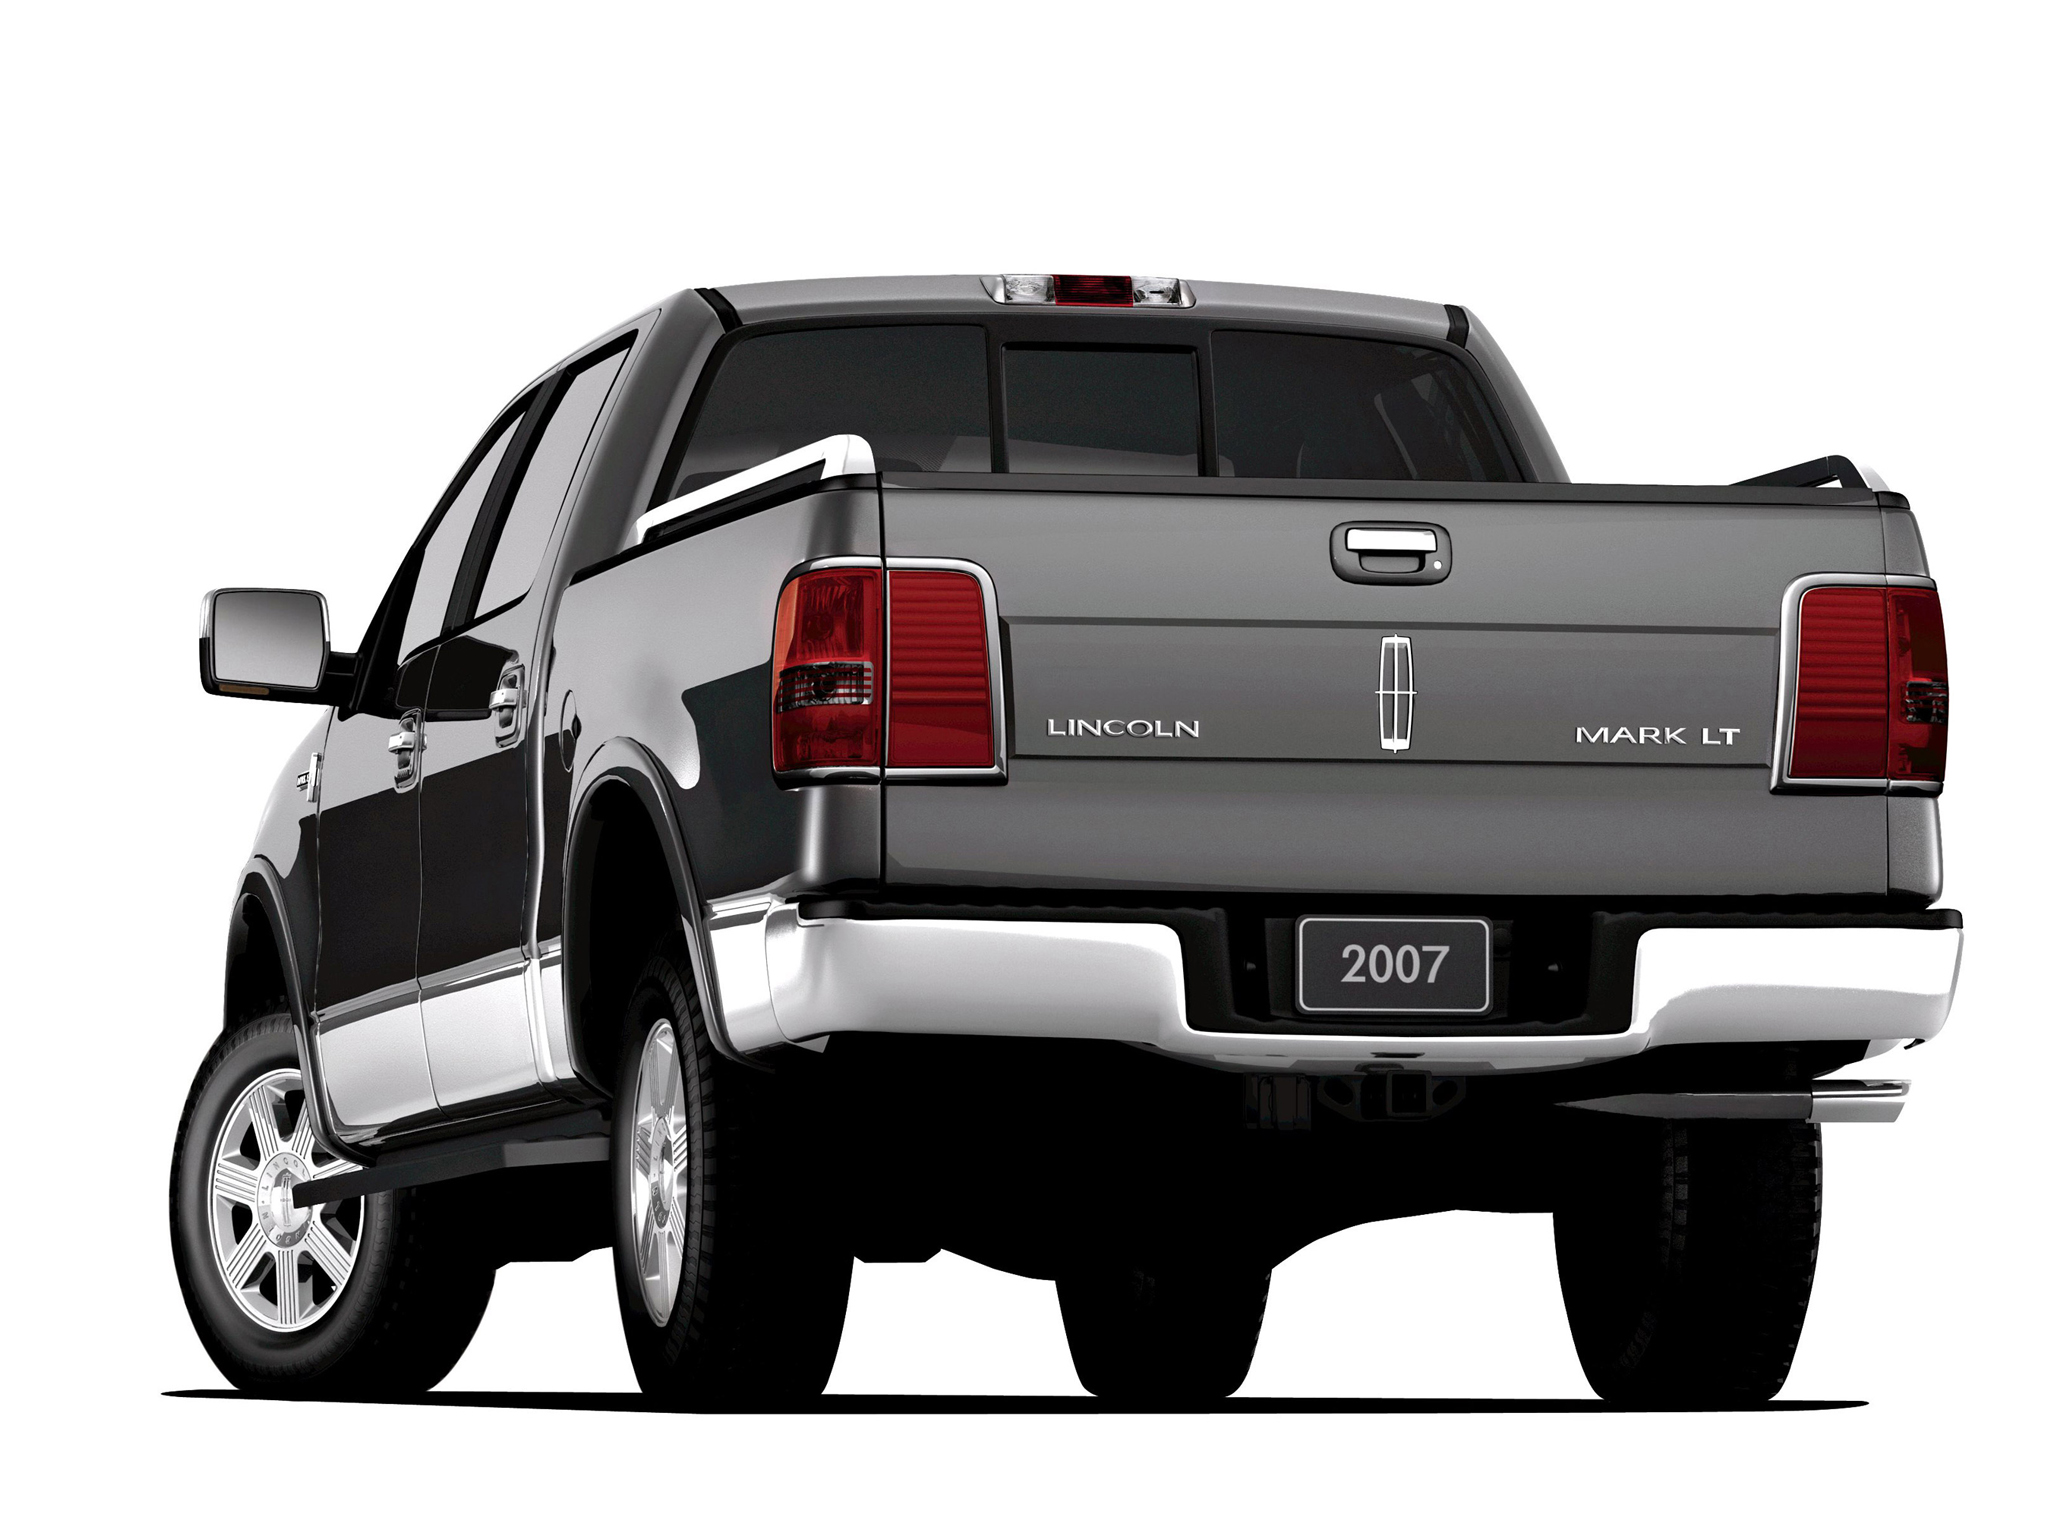 Lincoln Mark LT - 2048 x 1536, 12 из 19